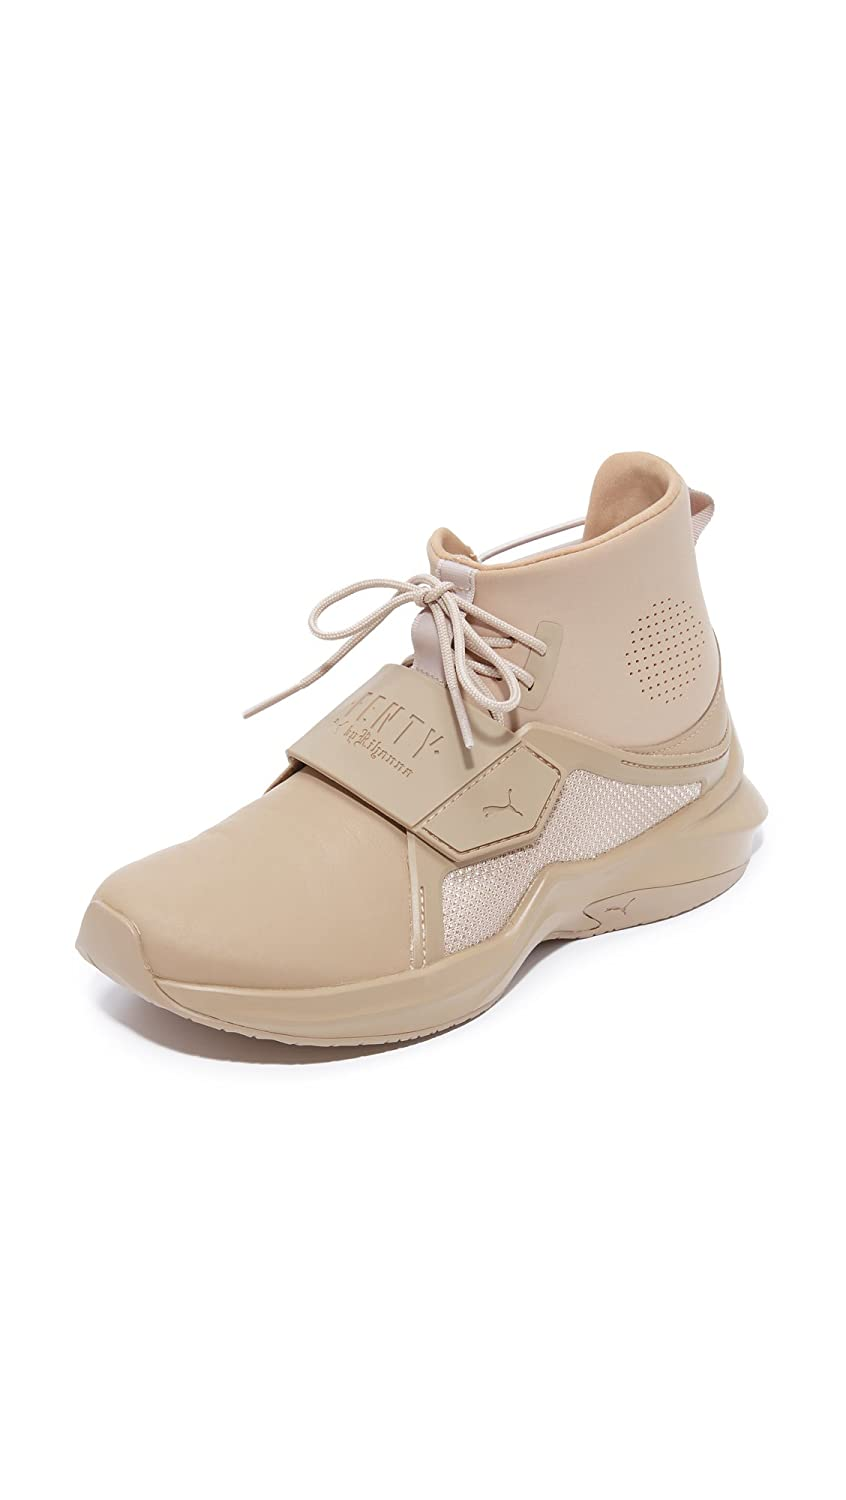 c0239b0a5e76 PUMA Women s FENTY X PUMA High Top Trainer Sneakers  9Napu0308238 ...